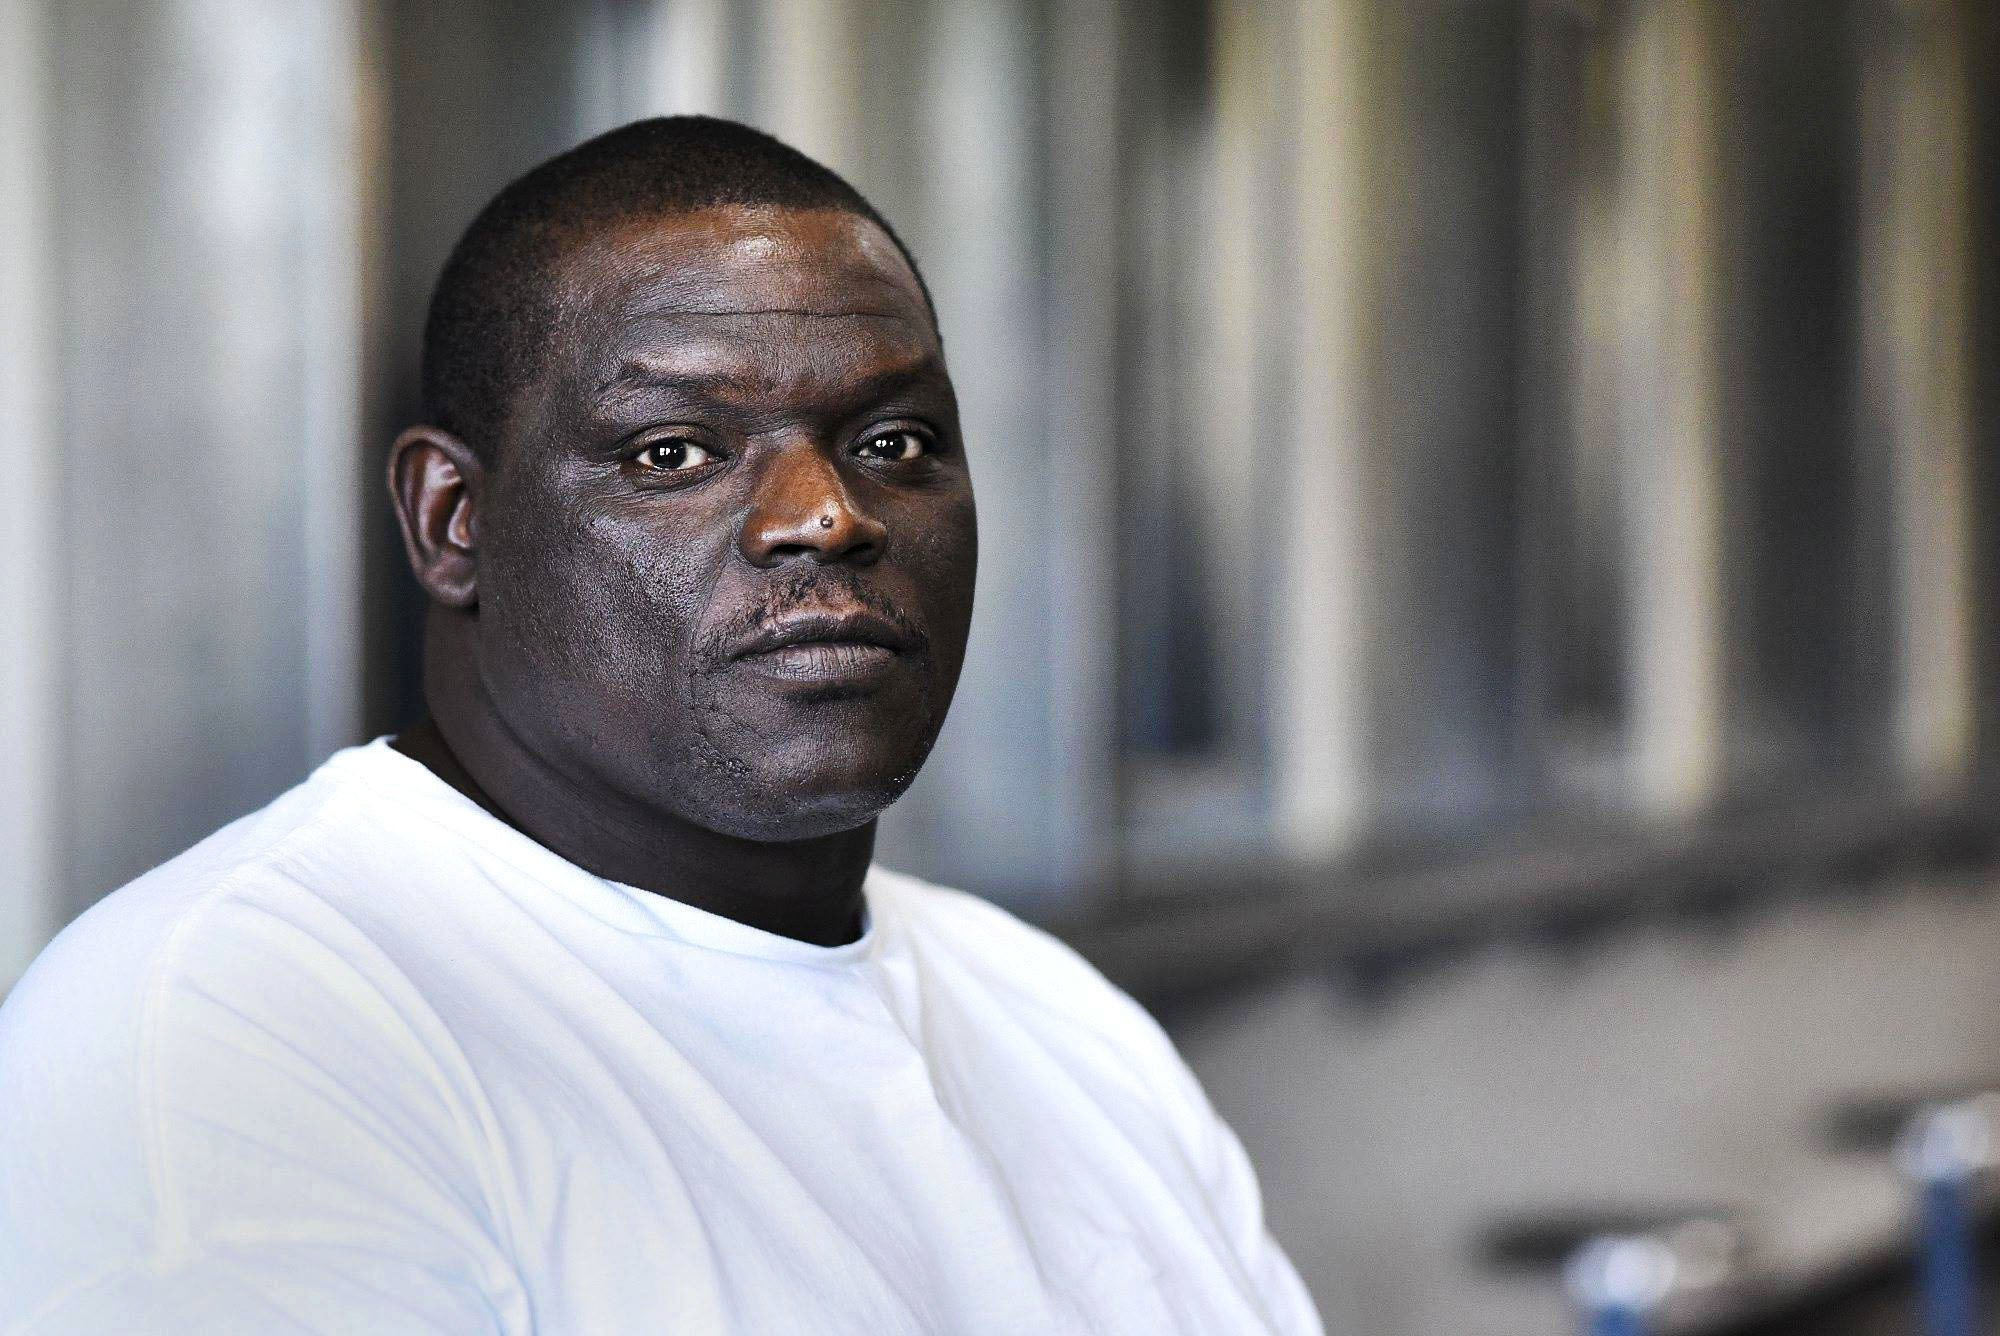 Missouri man wrongfully imprisoned for 17 years sues police